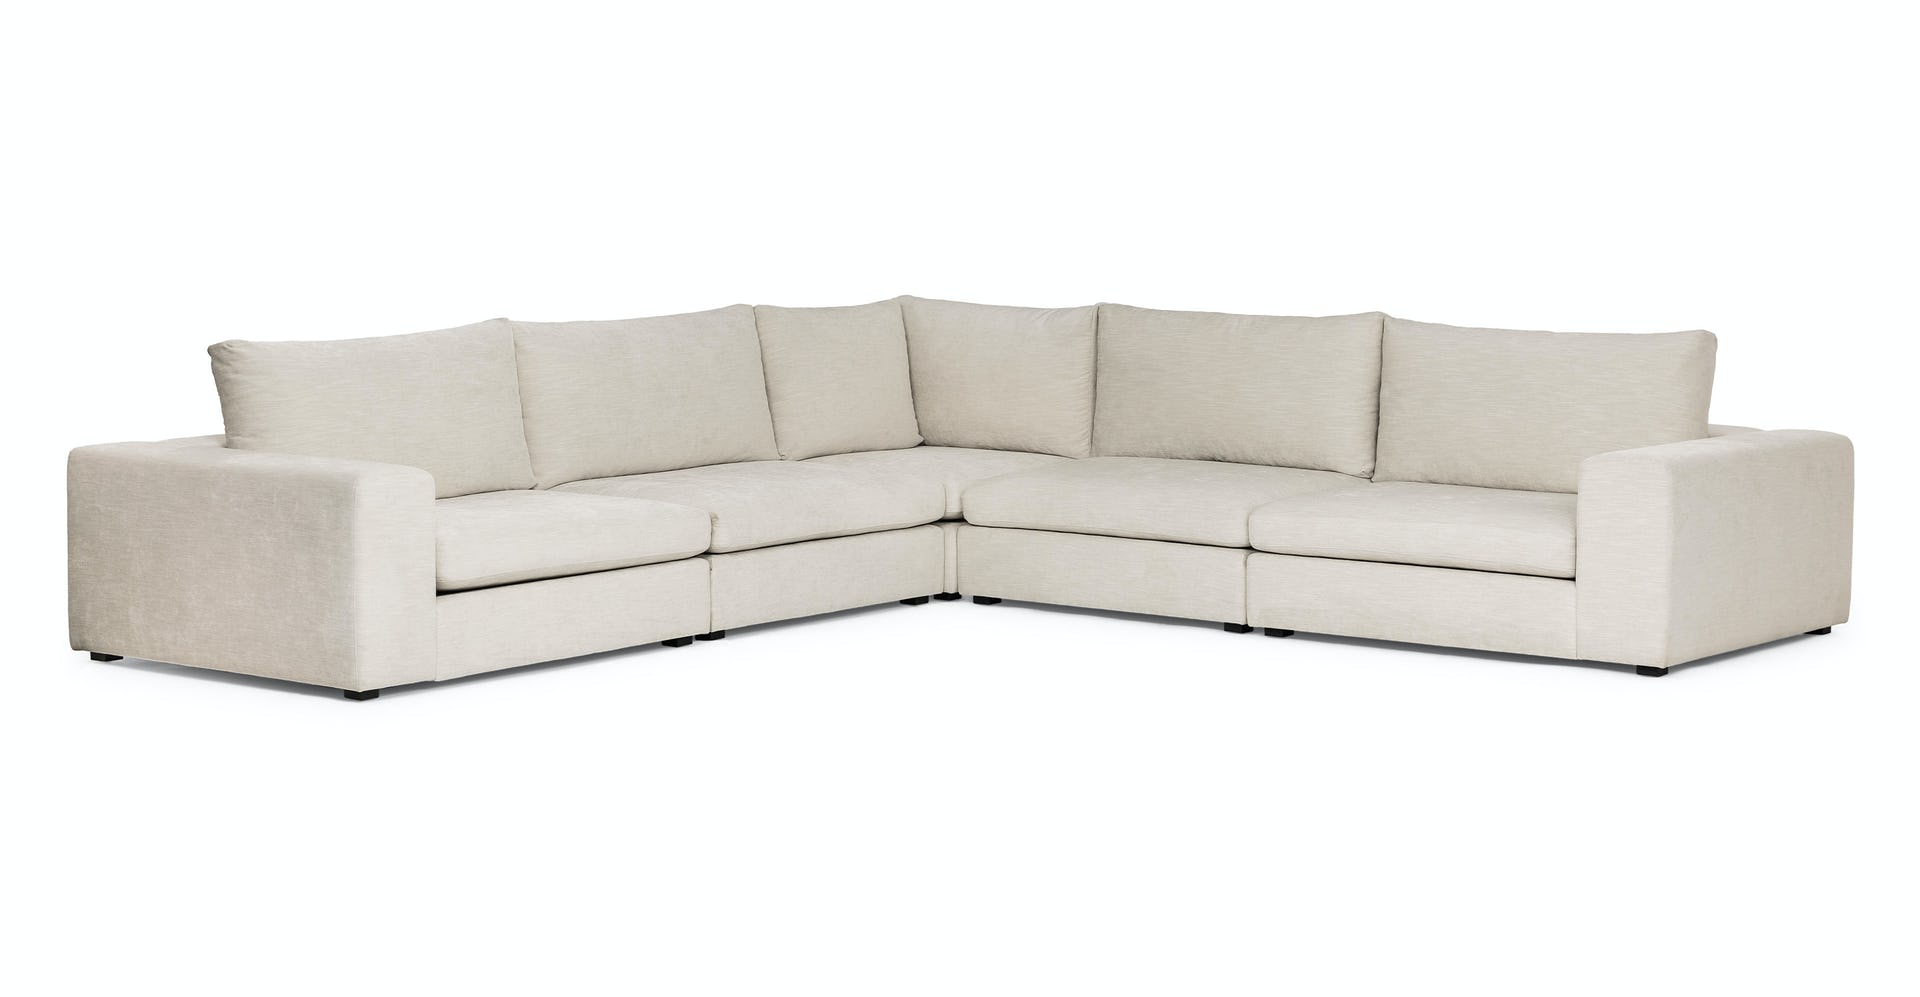 Super Gaba Pearl White Corner Modular Sectional Forskolin Free Trial Chair Design Images Forskolin Free Trialorg